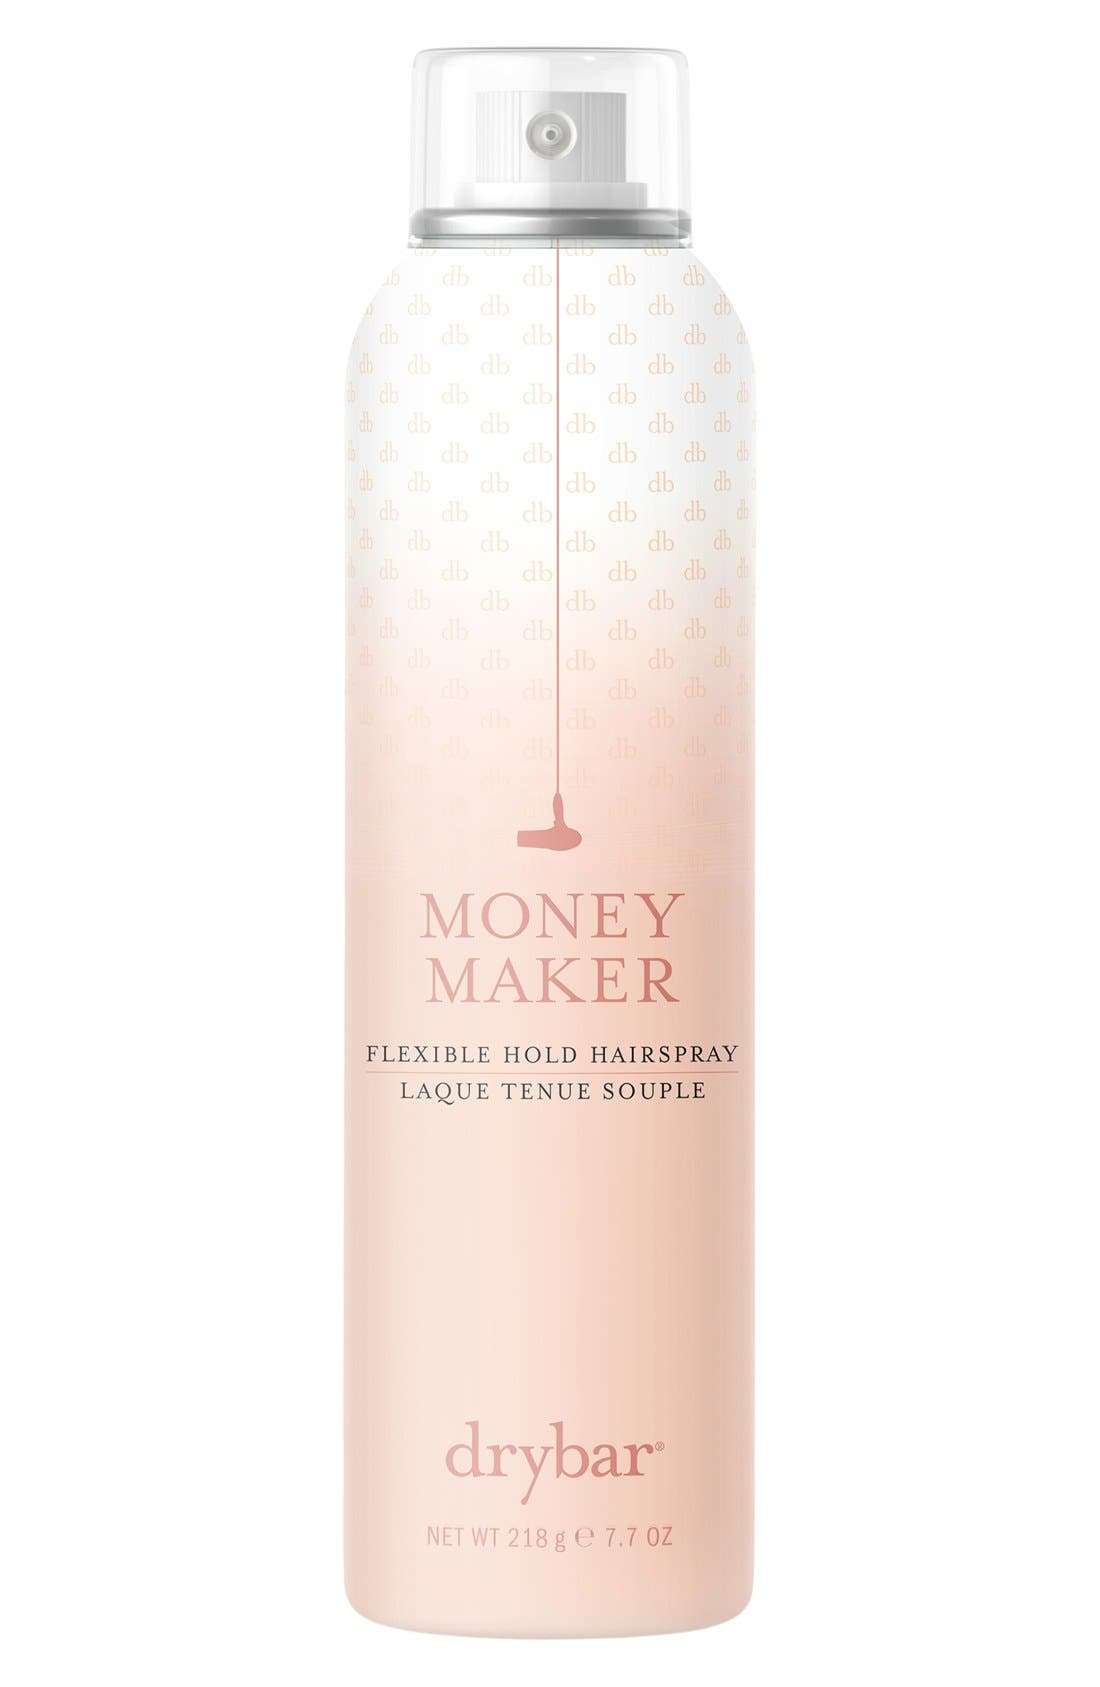 'Money Maker' Flexible Hold Hairspray,                             Main thumbnail 1, color,                             NO COLOR